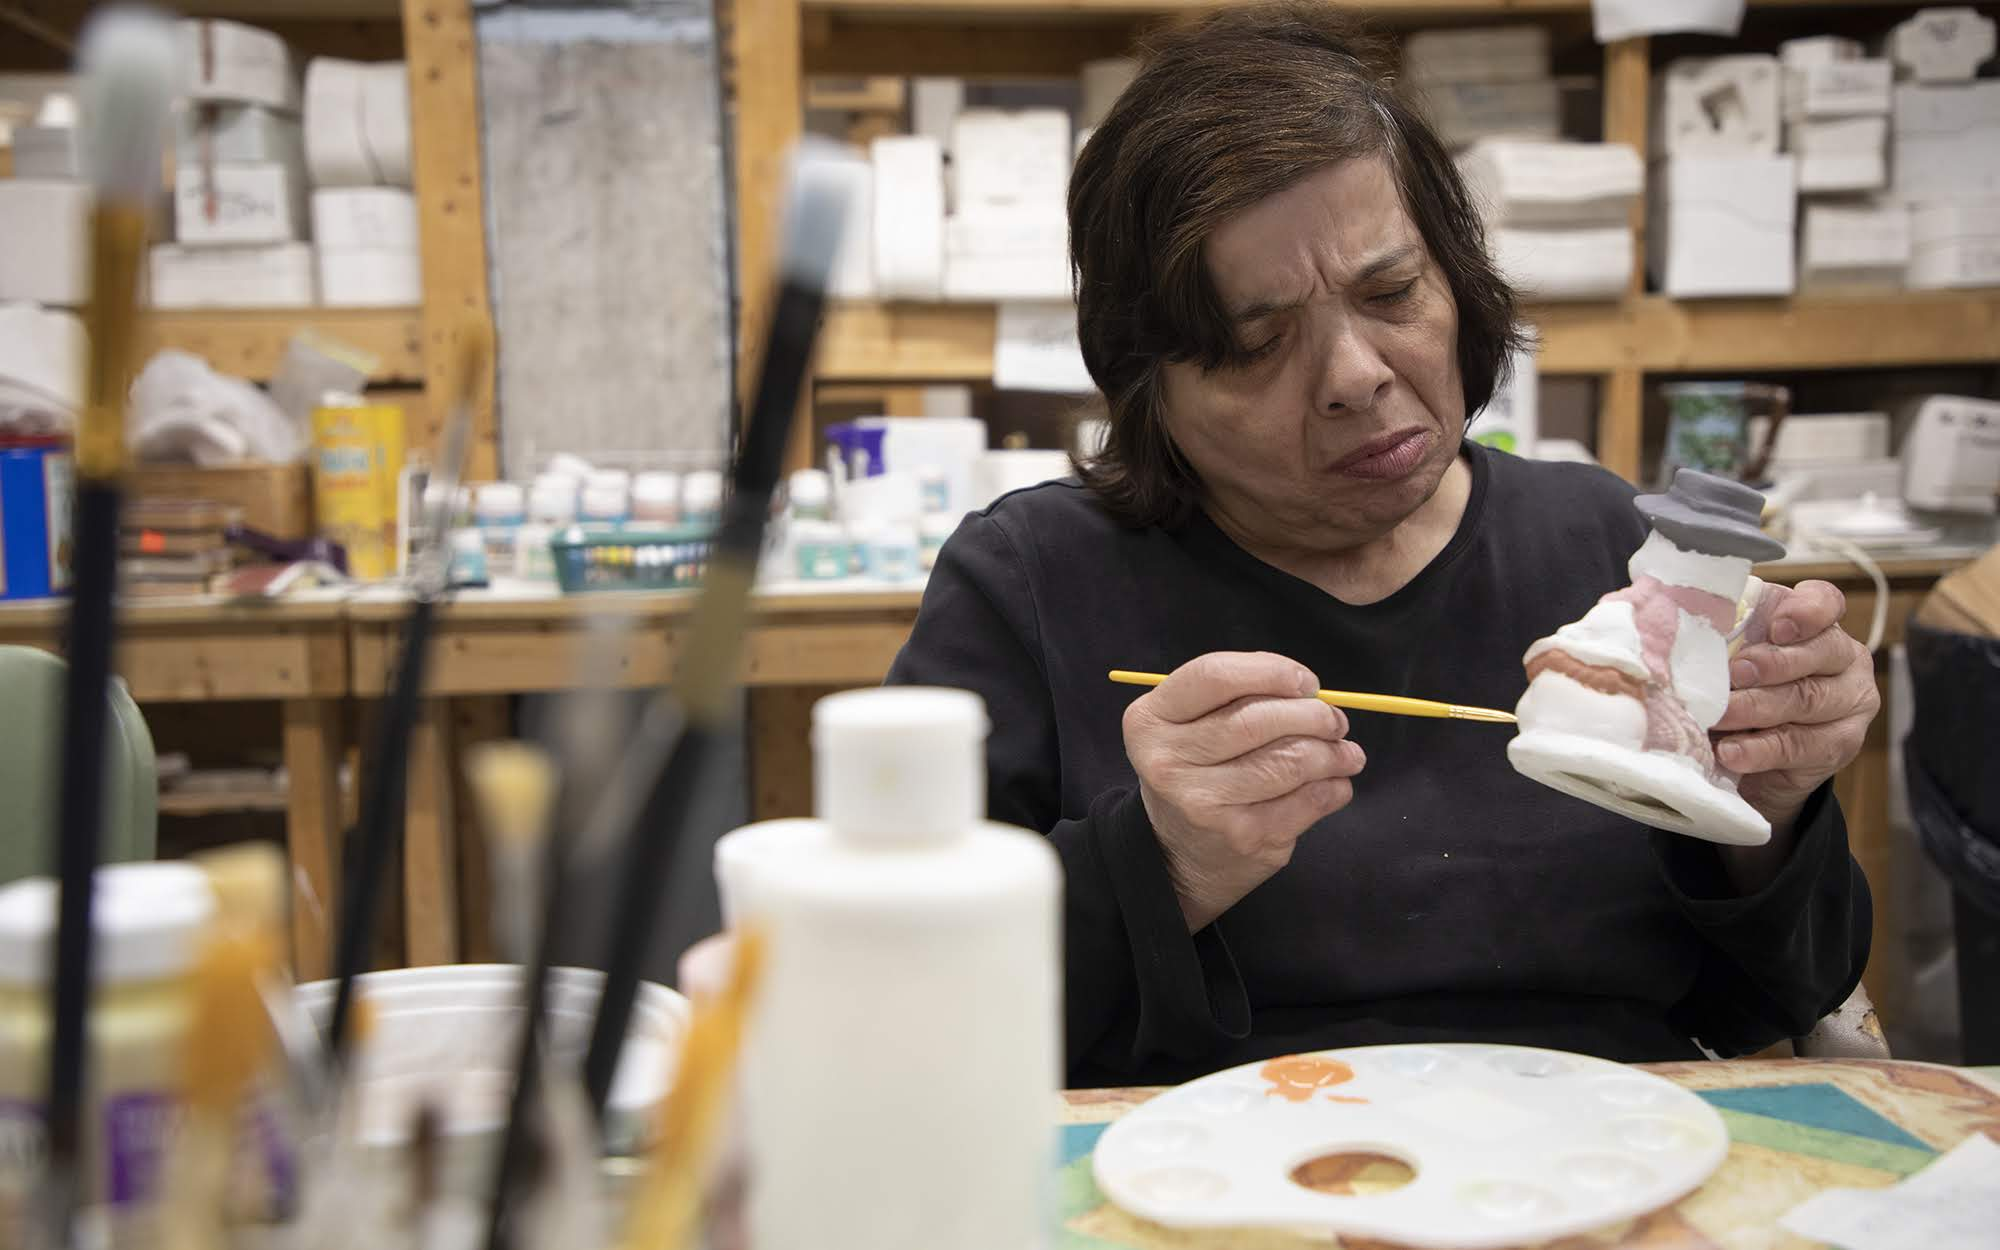 Janet Simeone paints a snowman in her ceramics class at Milestone Centers.